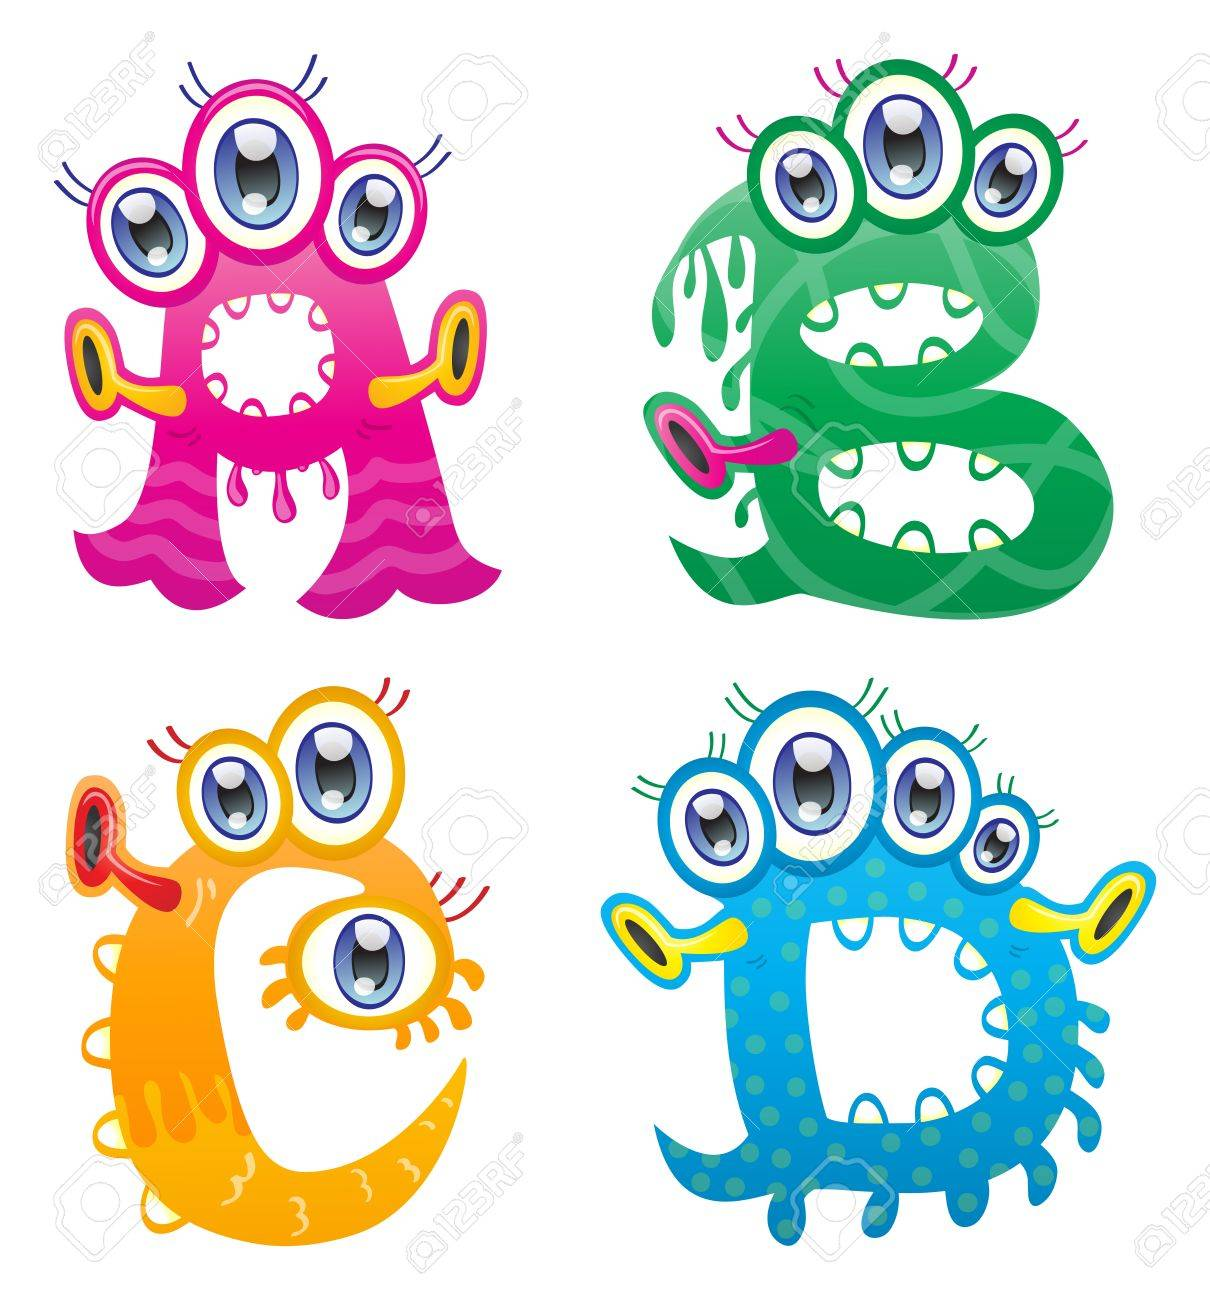 Cartoon monster letters from A to D Stock Vector - 19576418